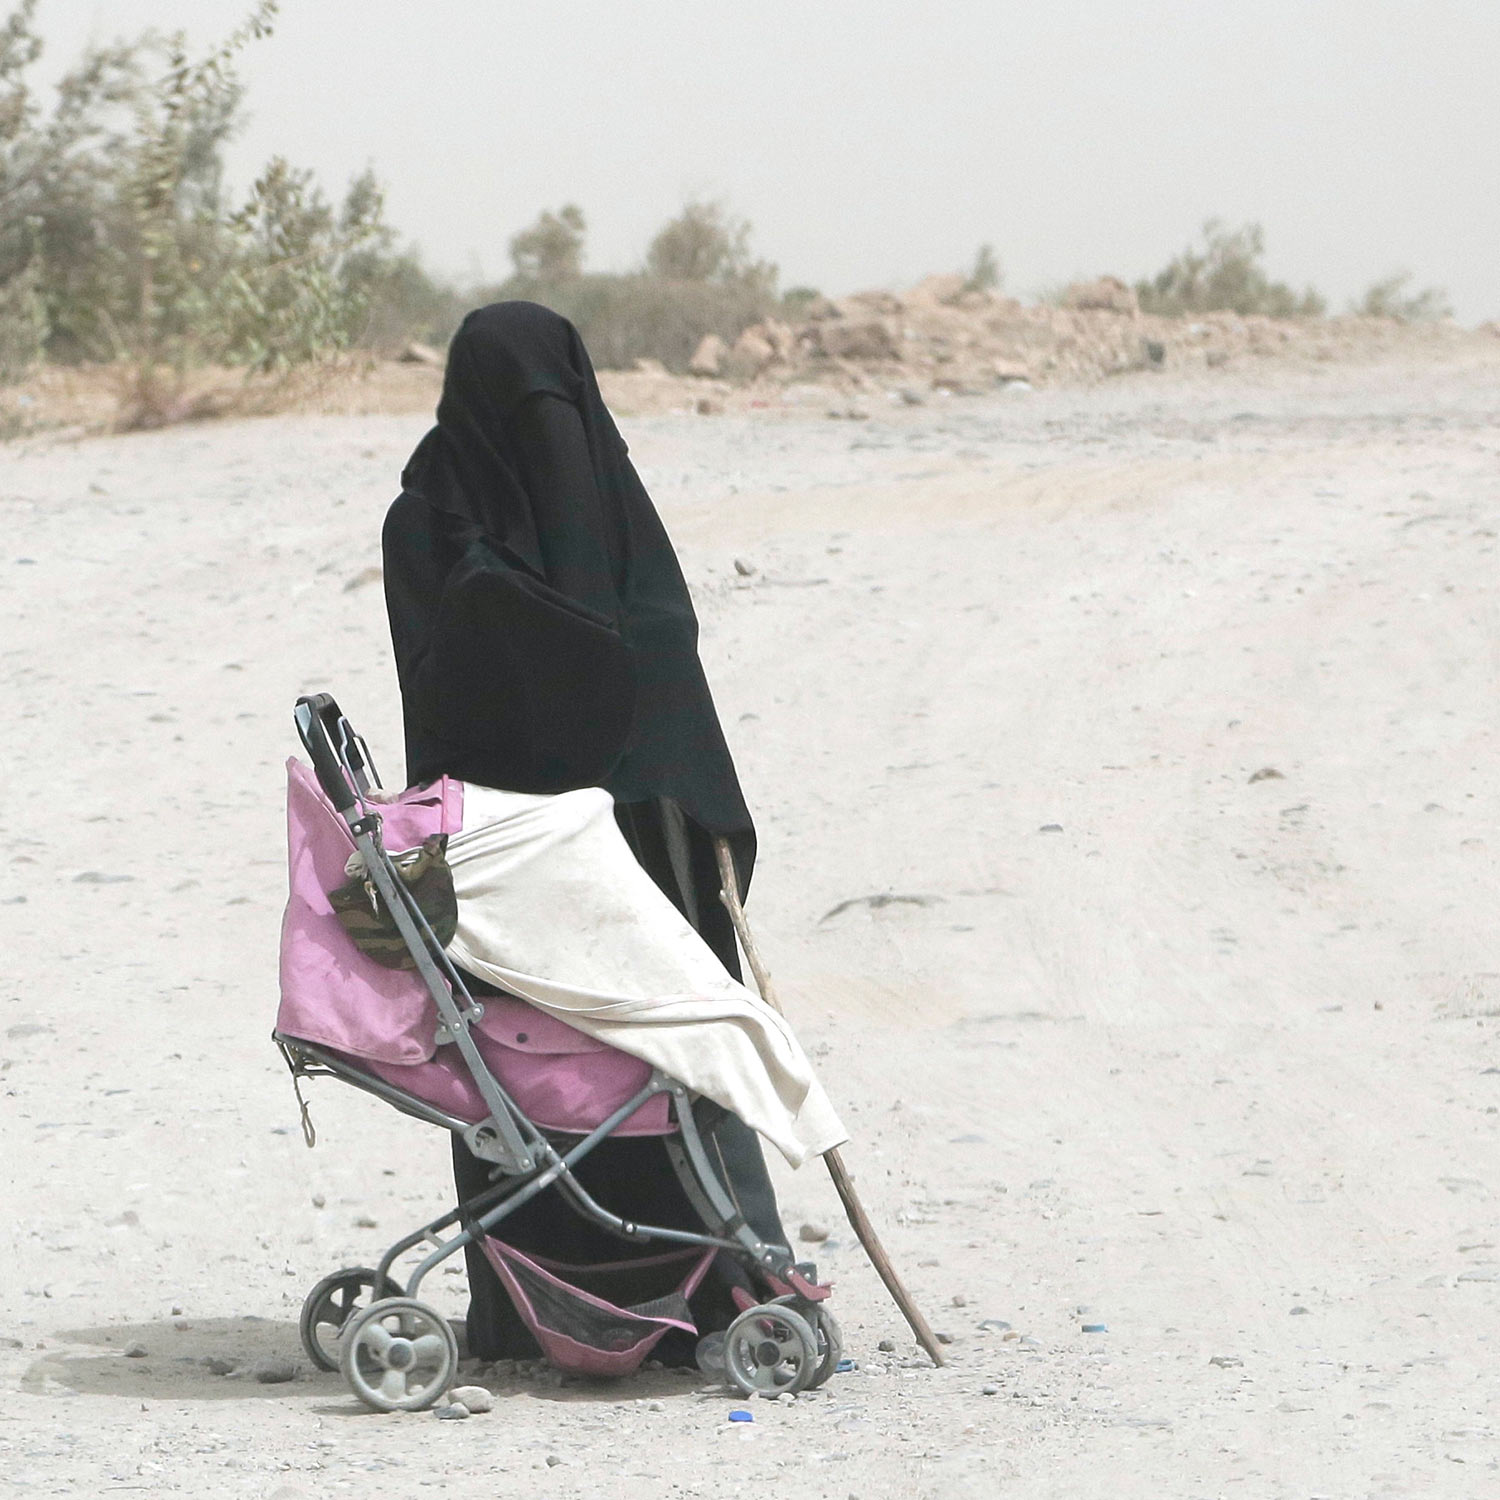 In this July 31, 2018 photo, a woman begs in the middle of a highway in Bayda province, Yemen. (AP Photo/Nariman El-Mofty)